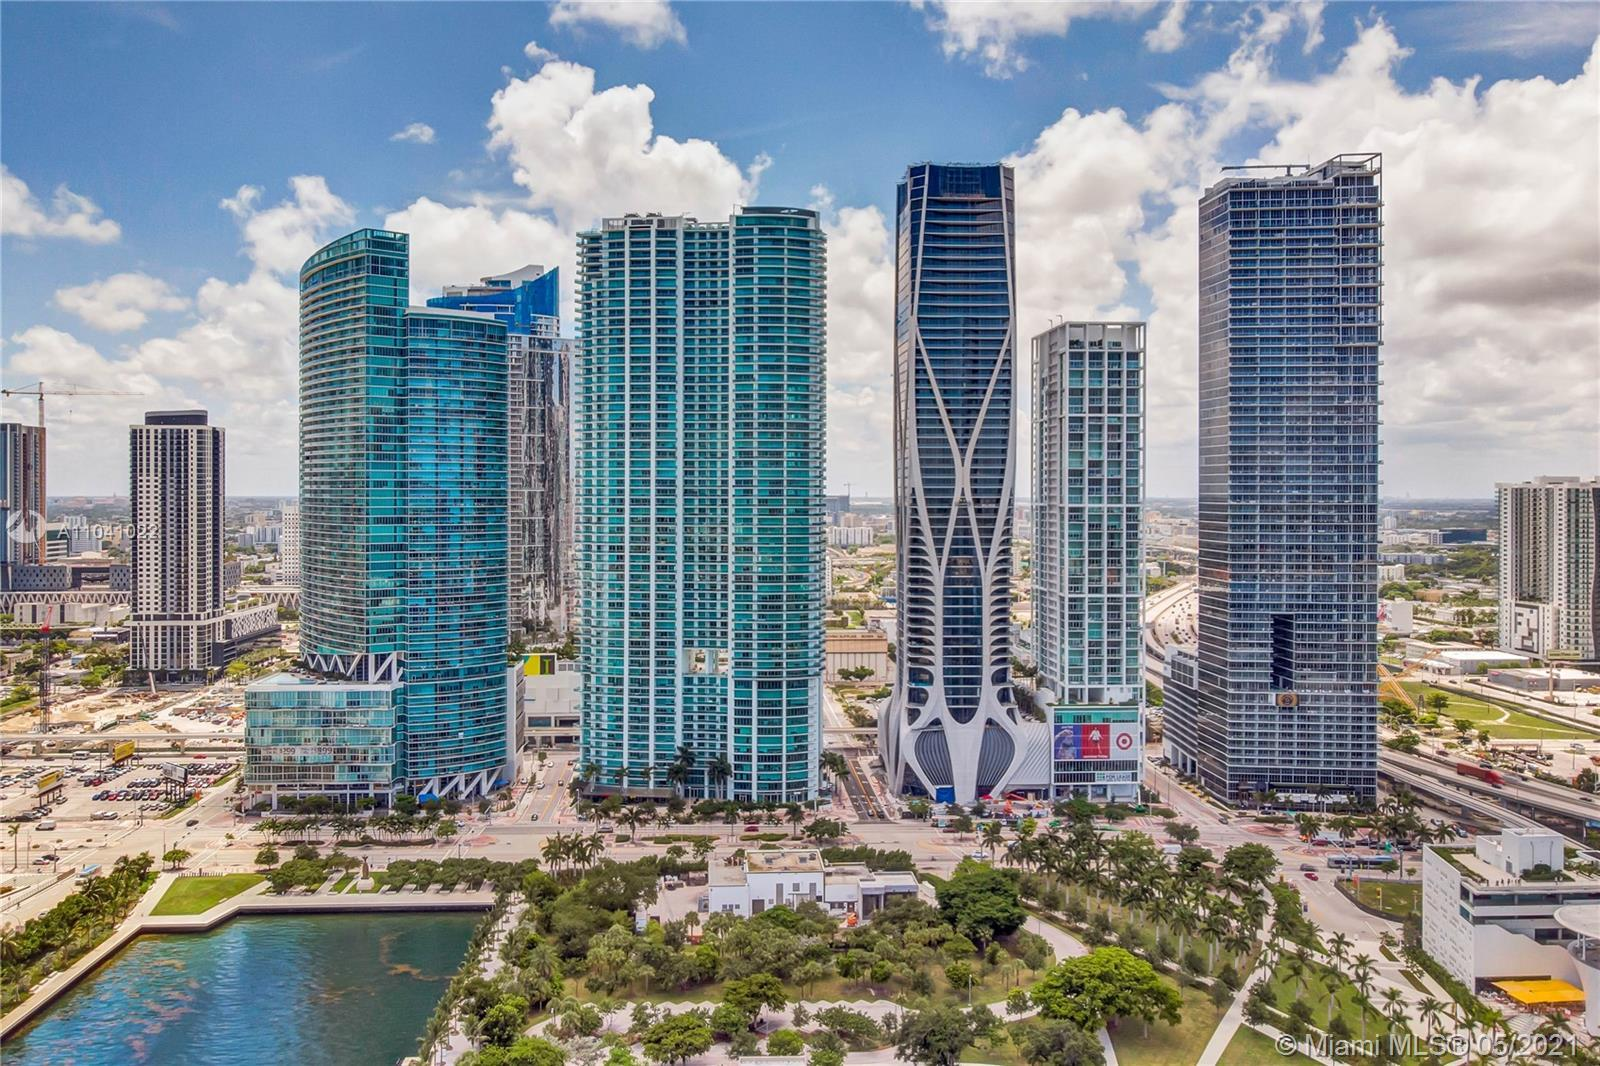 Absolutely amazing sunrise and sunset views of Miami, Miami Beach and Biscayne Bay. Perfectly locate